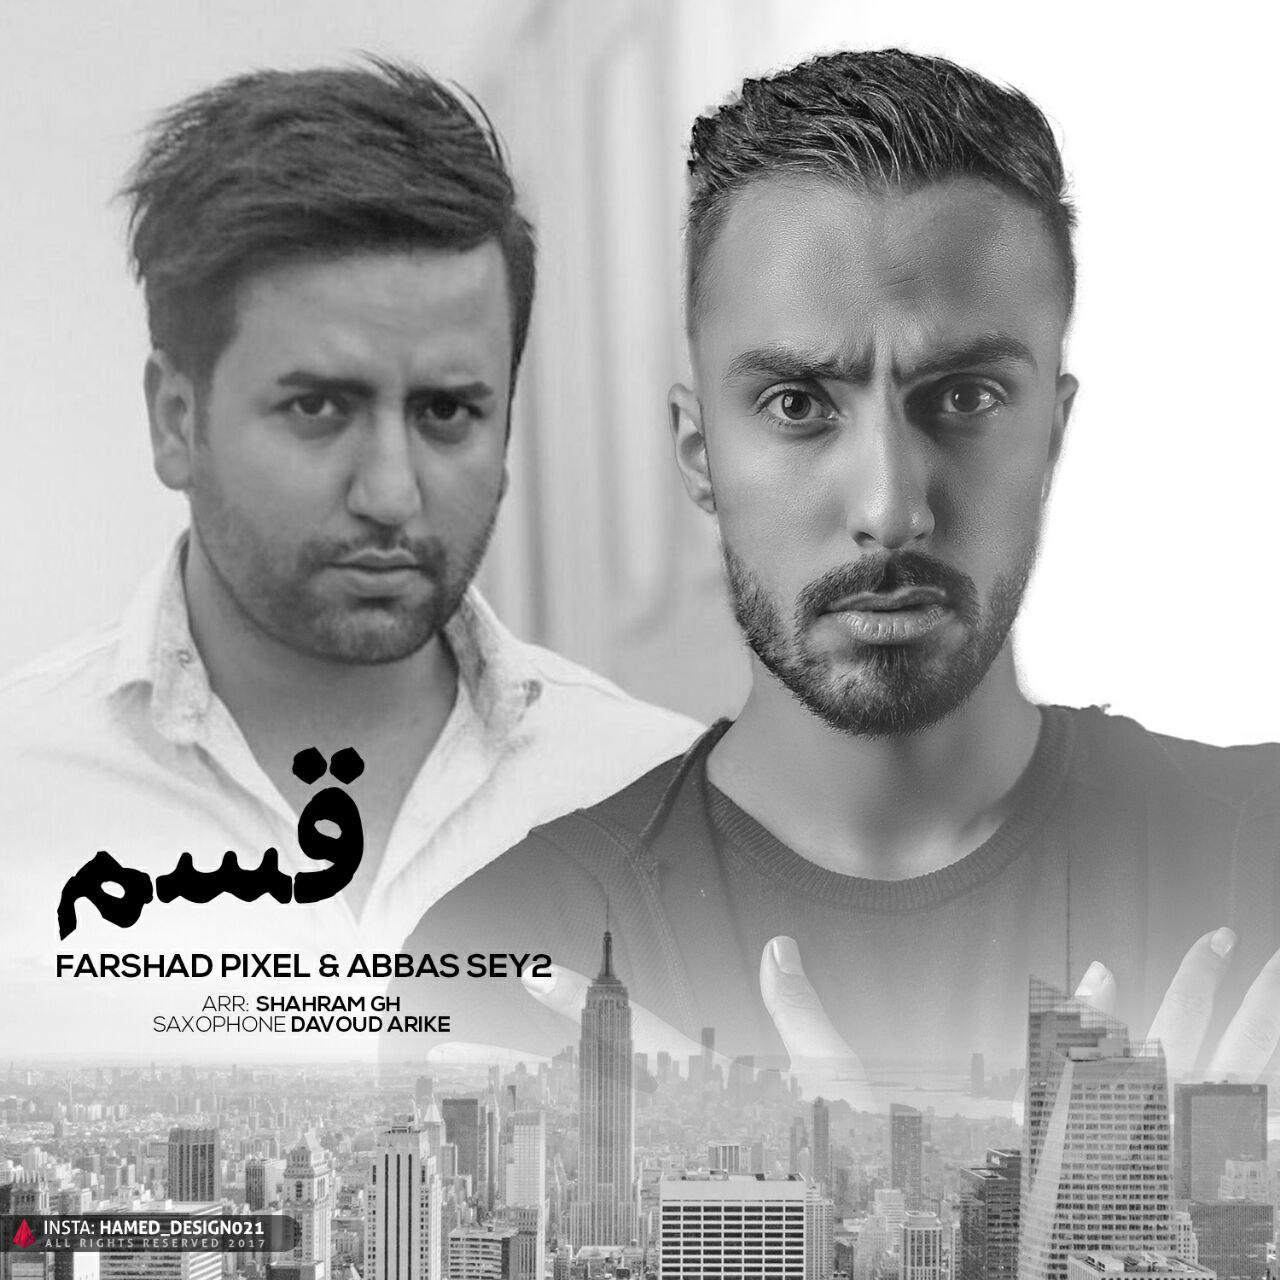 Farshad Pixel And Abbas Sey2 – Ghasam